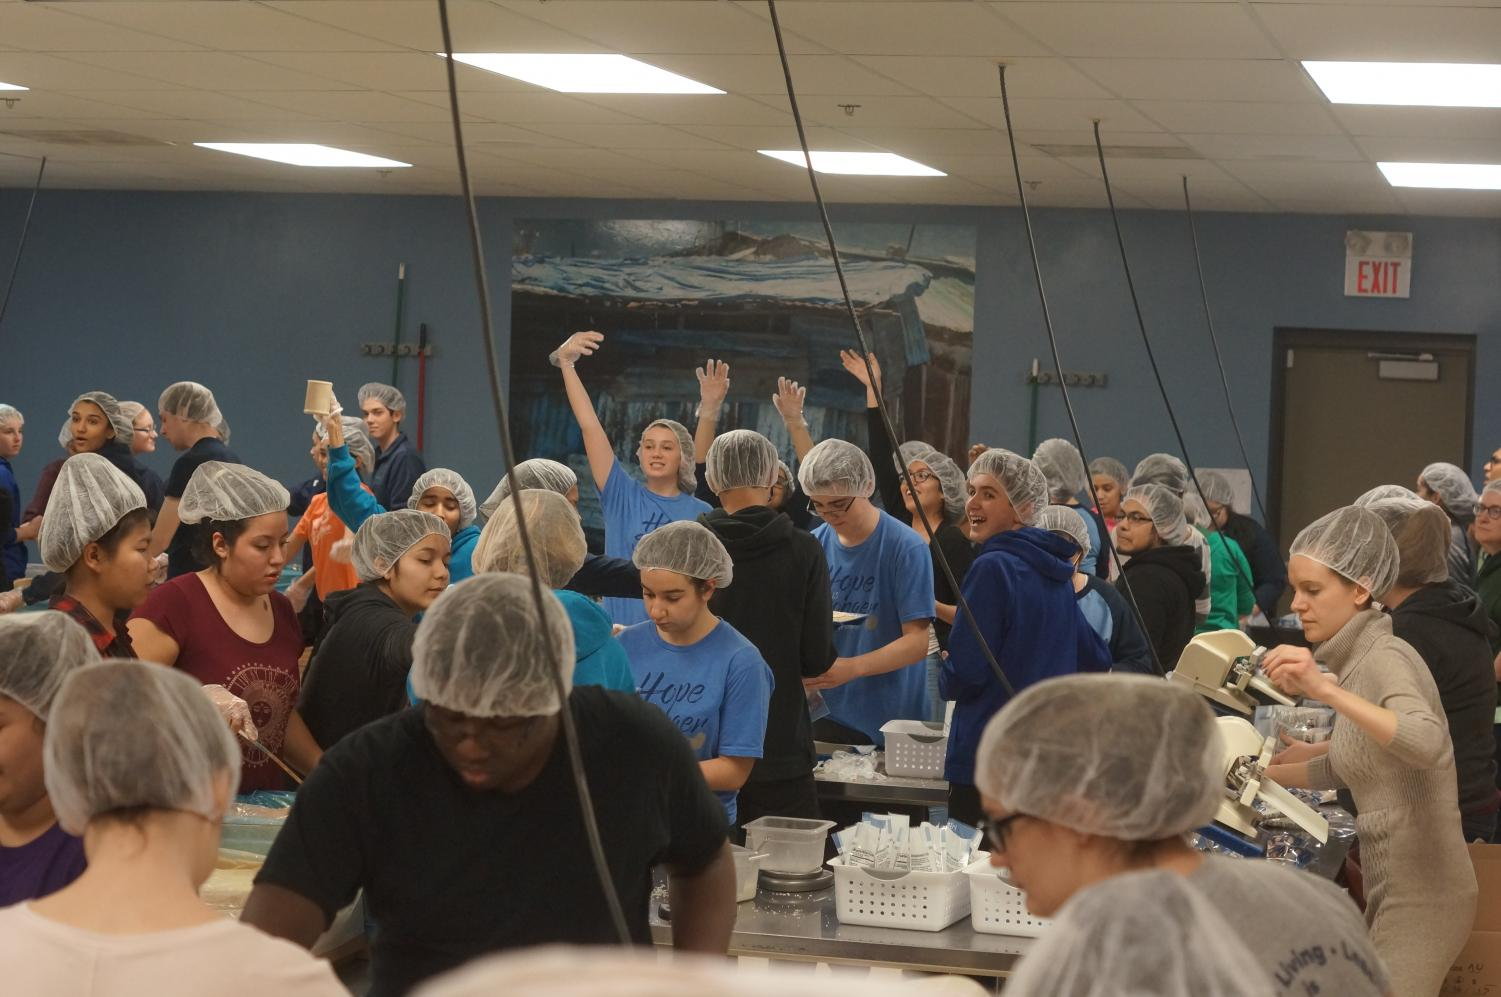 Last year 159 students and staff members packed 202 boxes of food at Feed My Starving Children.